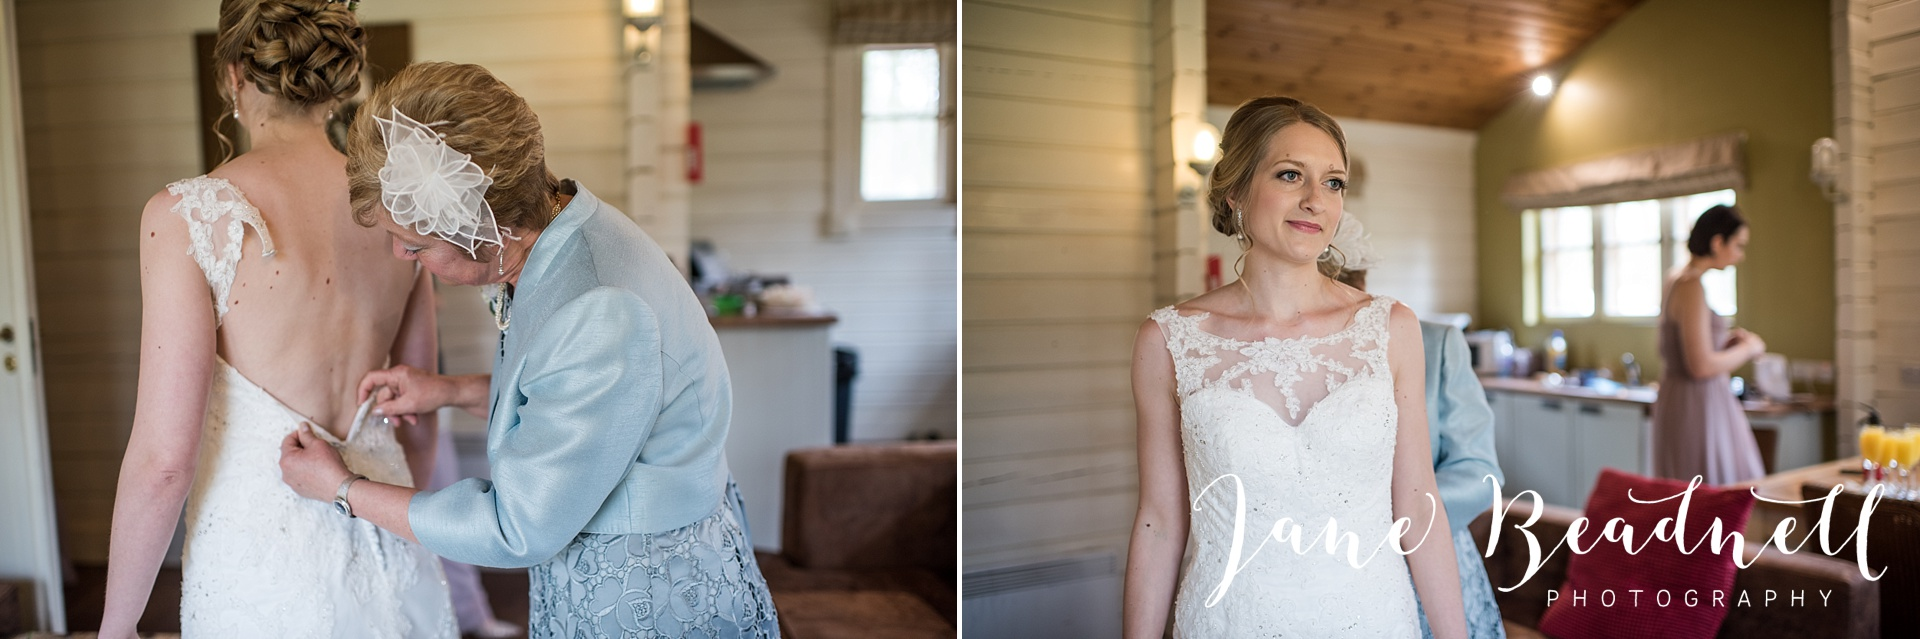 Otley Chevin Lodge wedding photography by Jane Beadnell Photography Leeds_0027